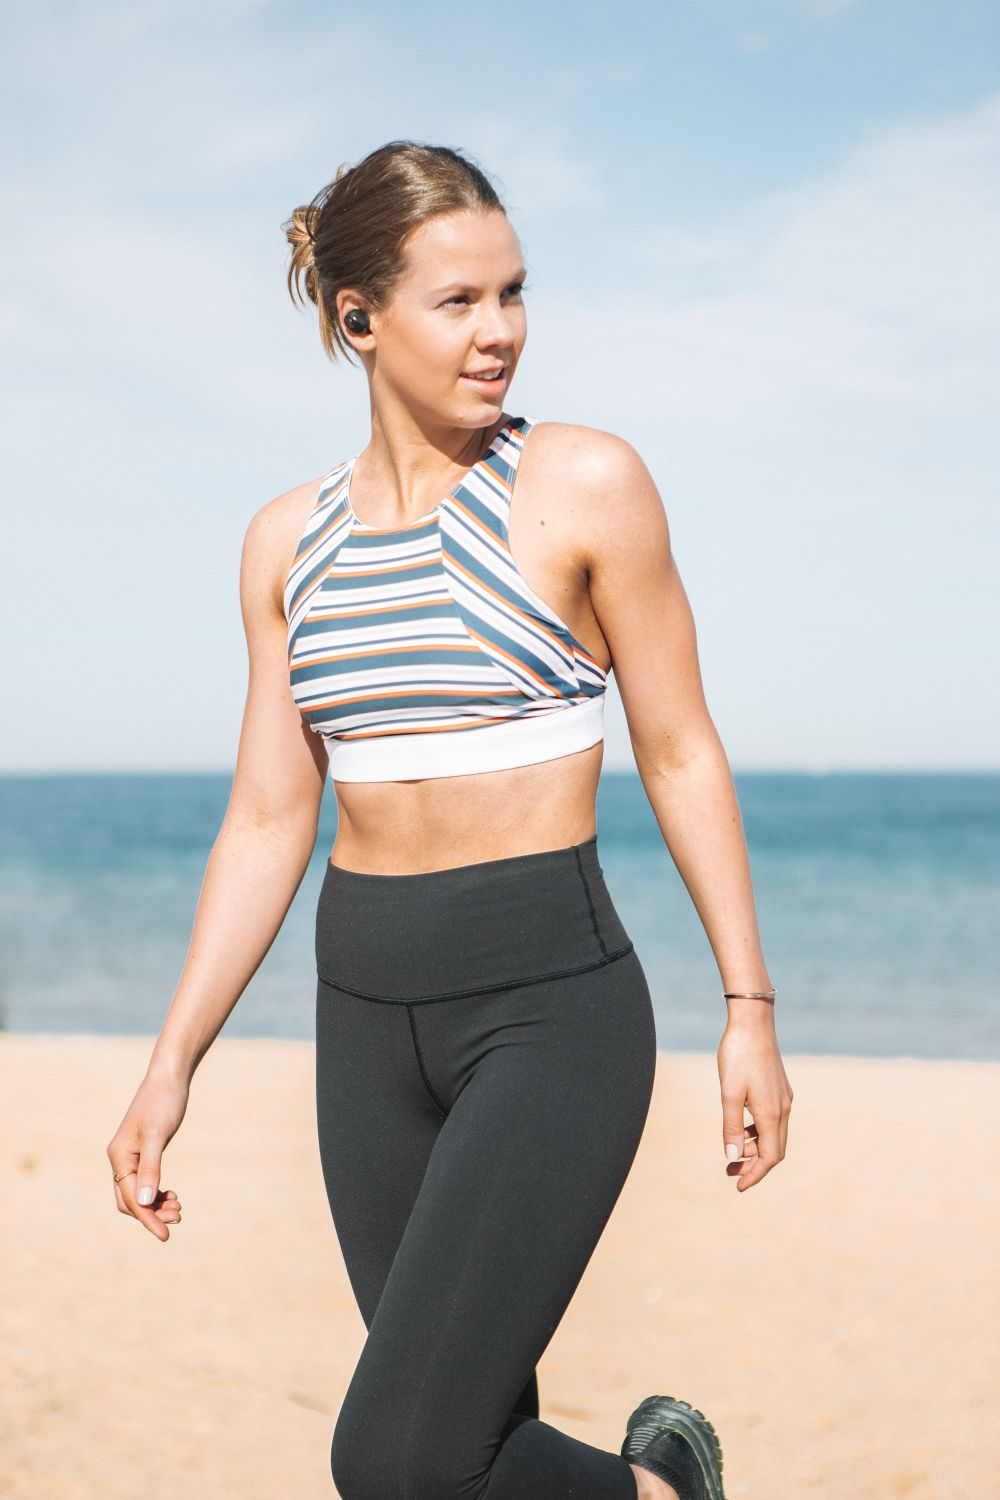 activewear model beach